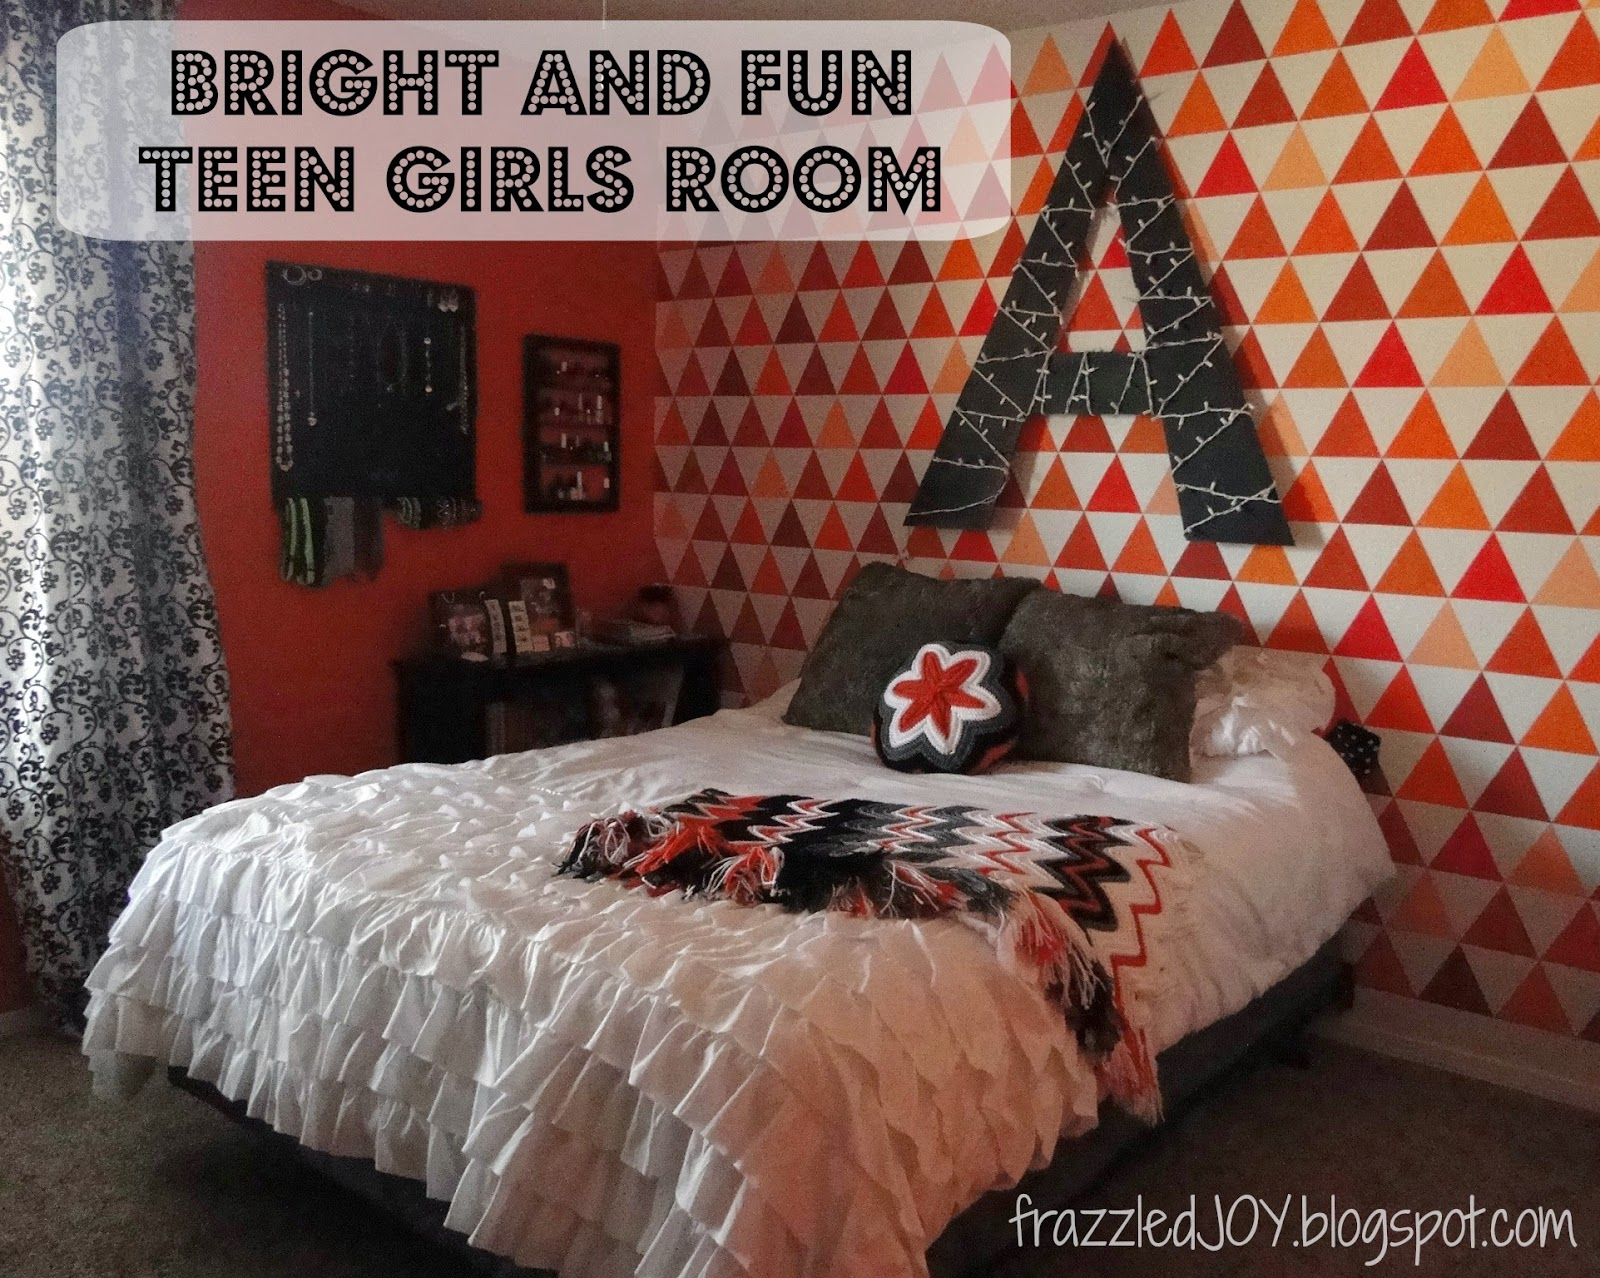 painted projects triangle accent wall in teen girls room Frazzled Joy